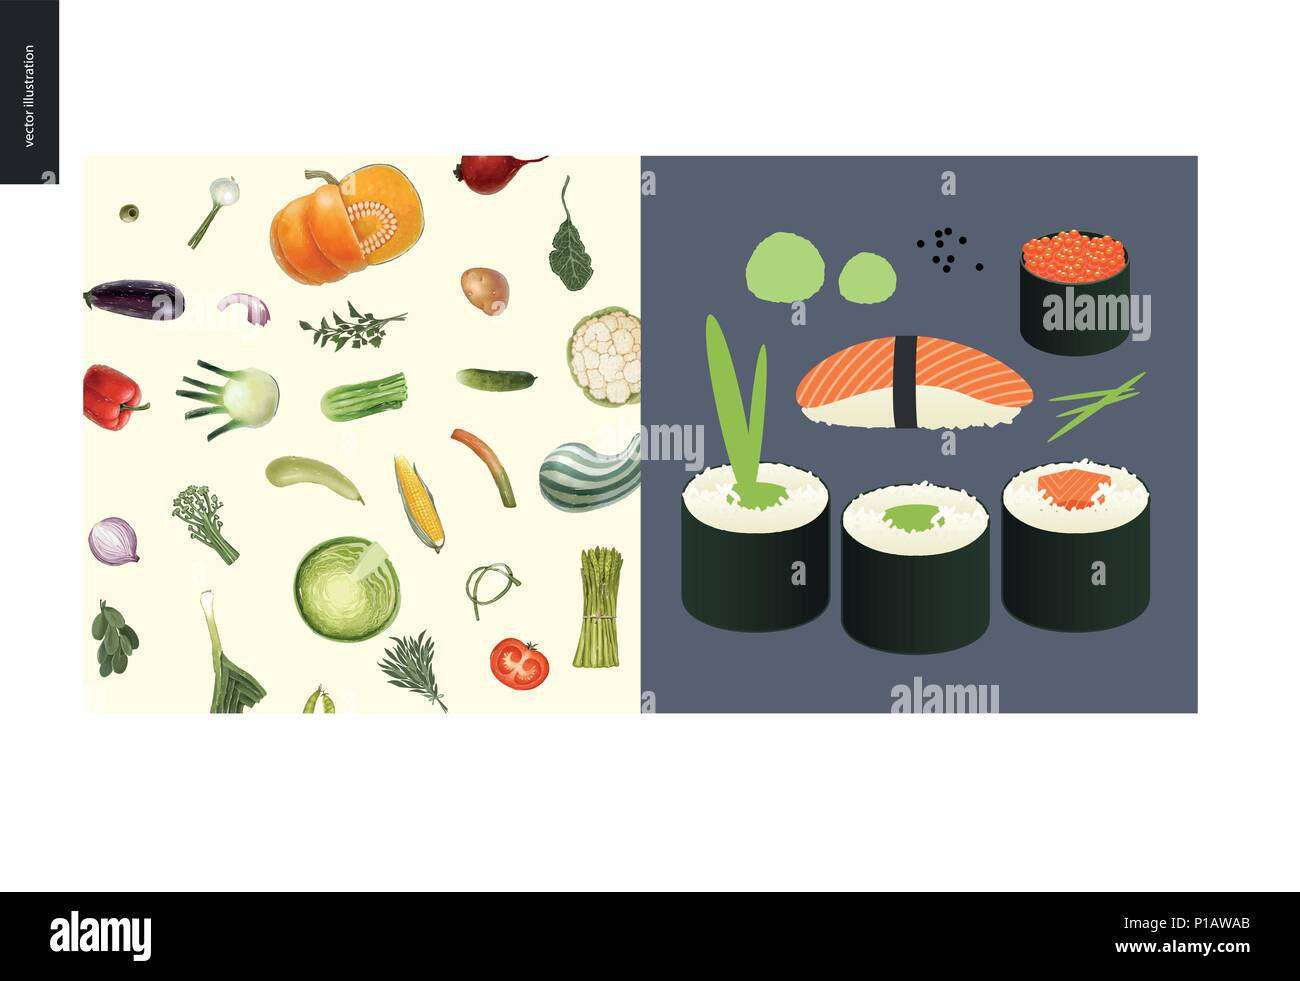 Simple things - meal - flat cartoon vector illustration of vegetables pattern, greens, onion, pumpkin, salad, corn and tomato, sushi and rolls with sa - Stock Vector